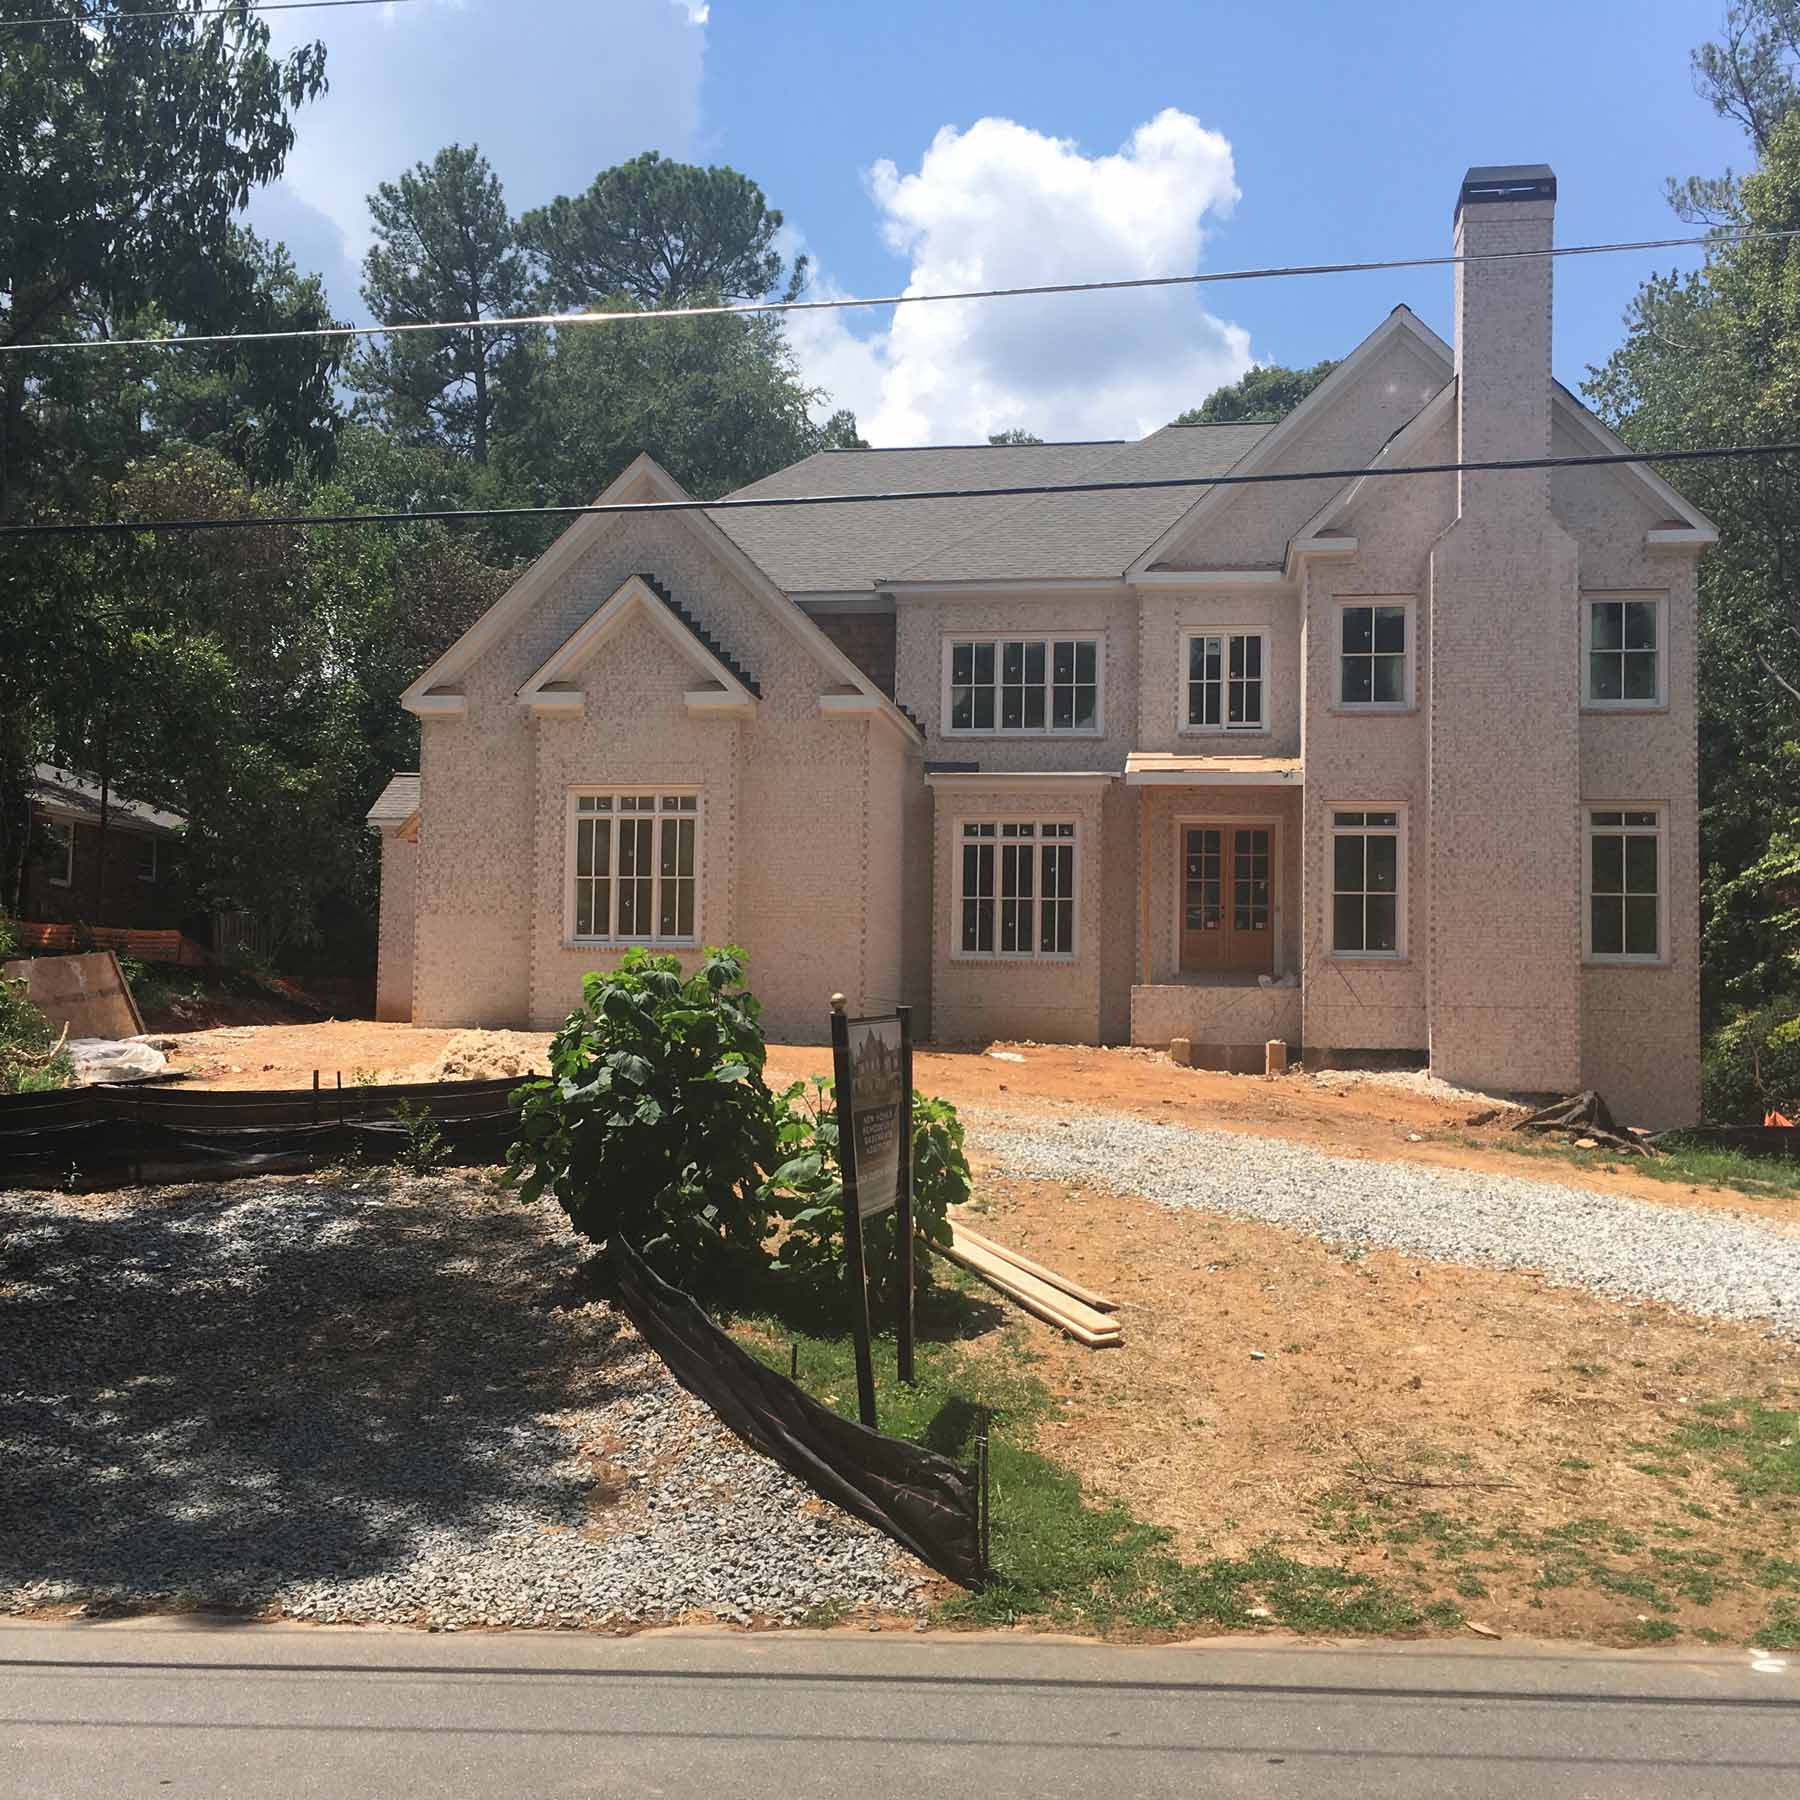 Enfamiljshus för Försäljning vid Upcoming Custom Build in Chastain 4566 Dudley Lane Sandy Springs, Georgien 30327 Usa